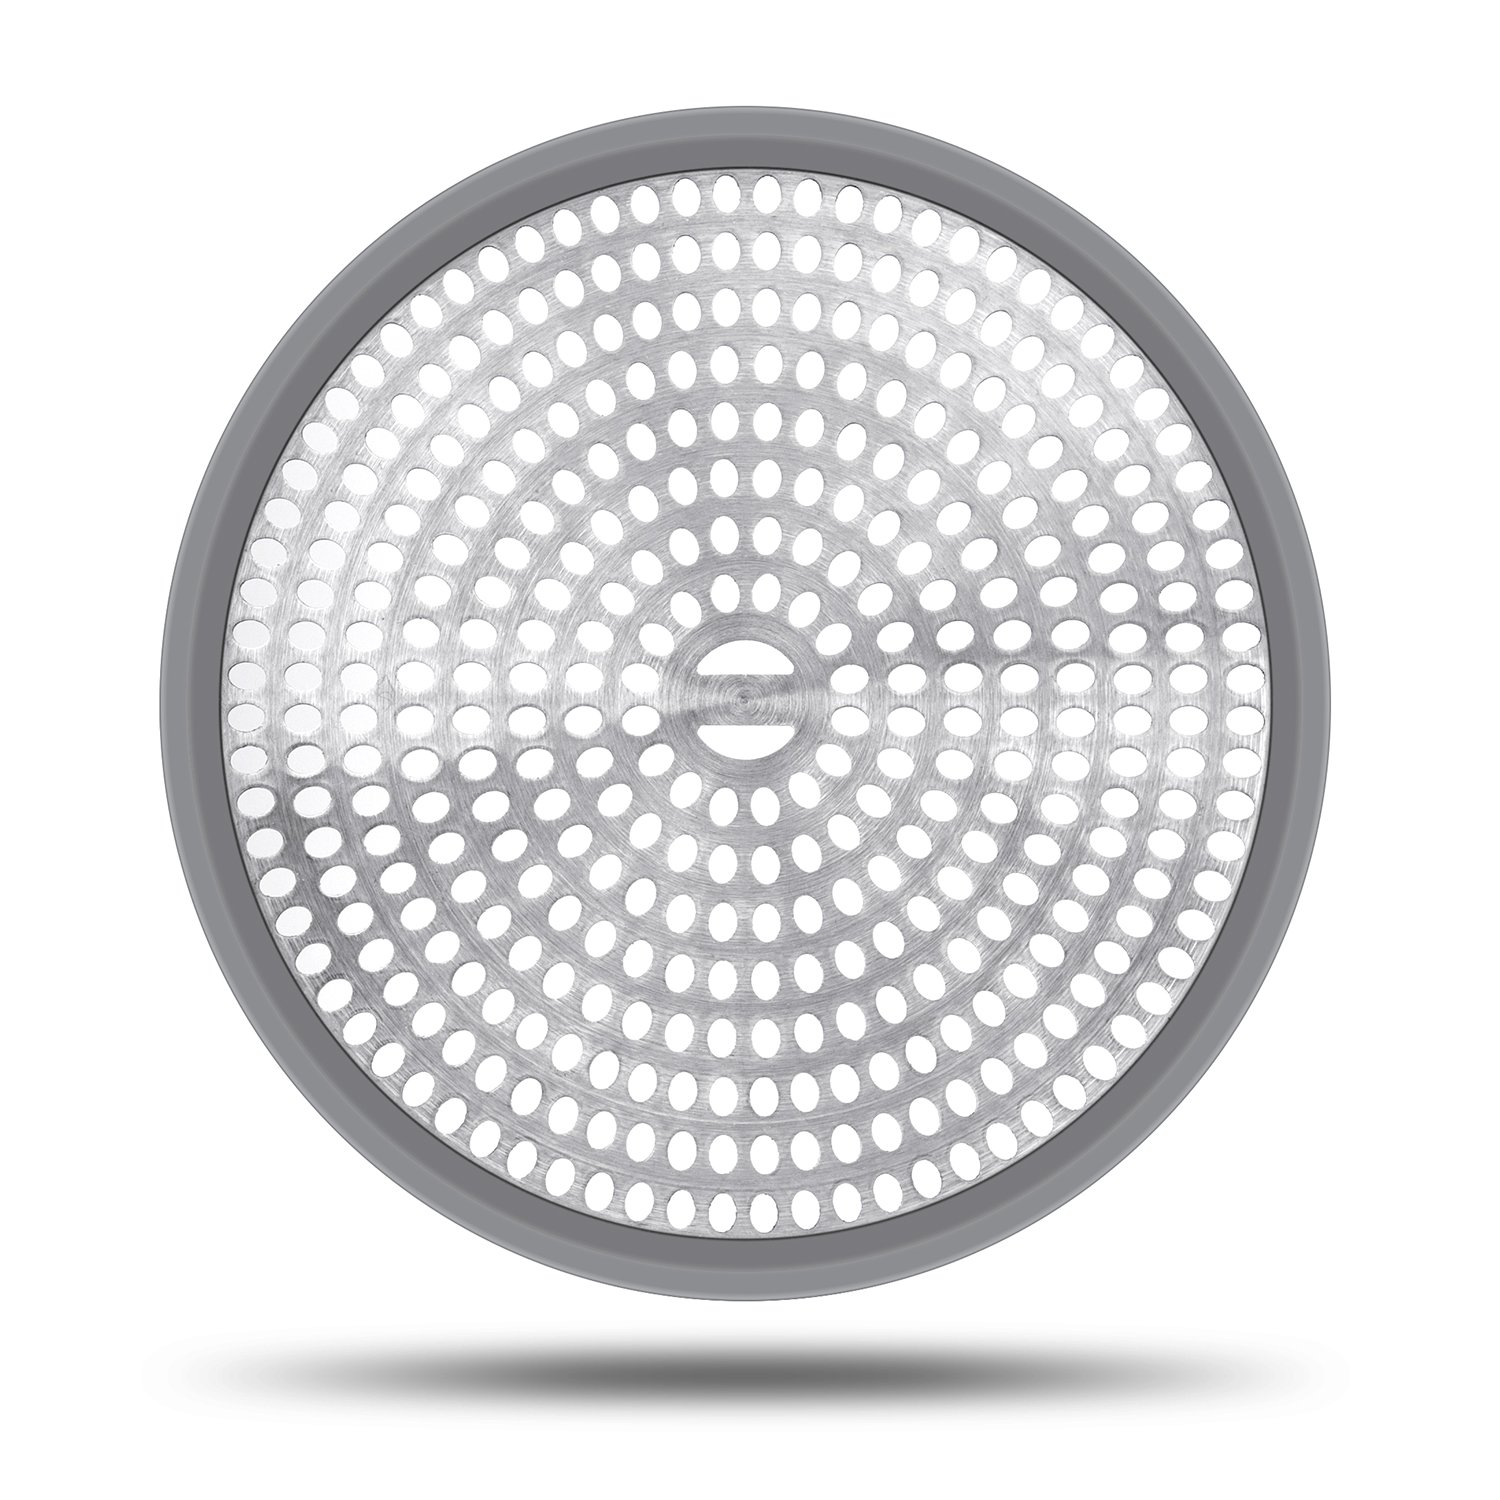 LEKEYE Shower Drain Hair Catcher//Strainer//Stainless Steel and Silicone